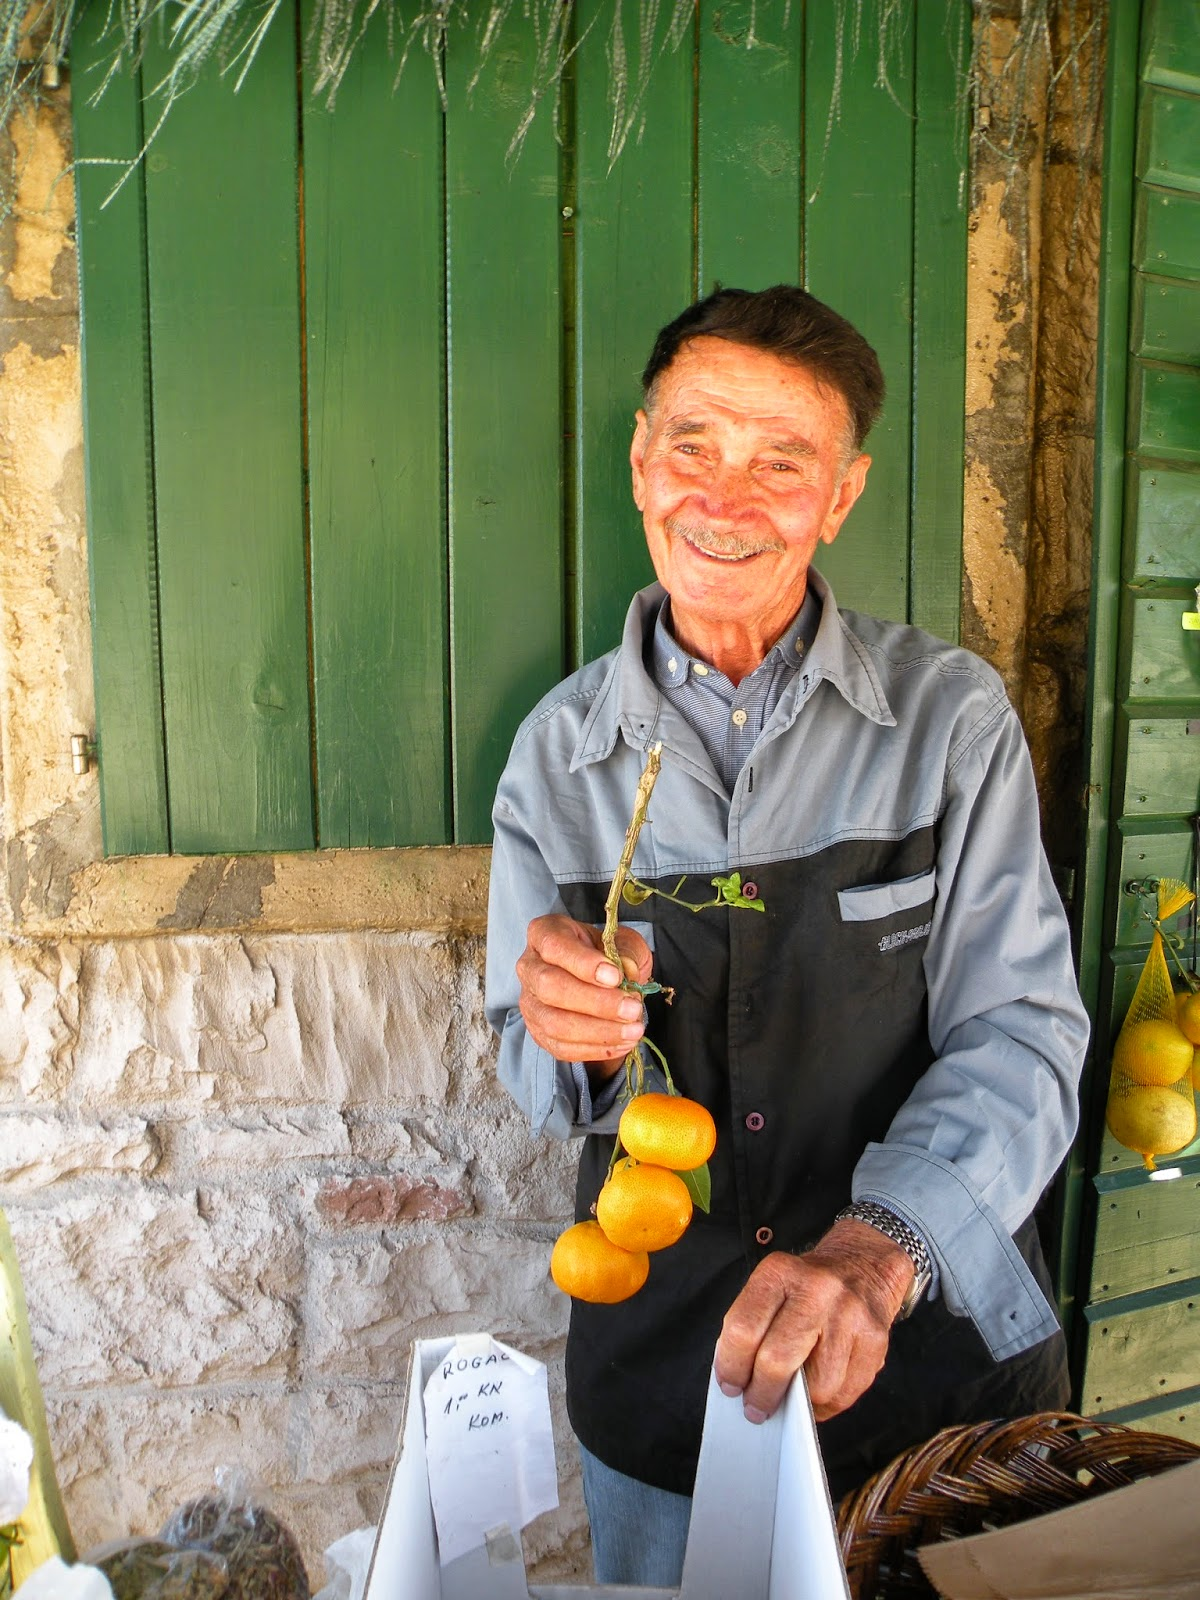 Meeting friendly farmers in Croatia. Photograph by Janie Robinson, Travel Writer